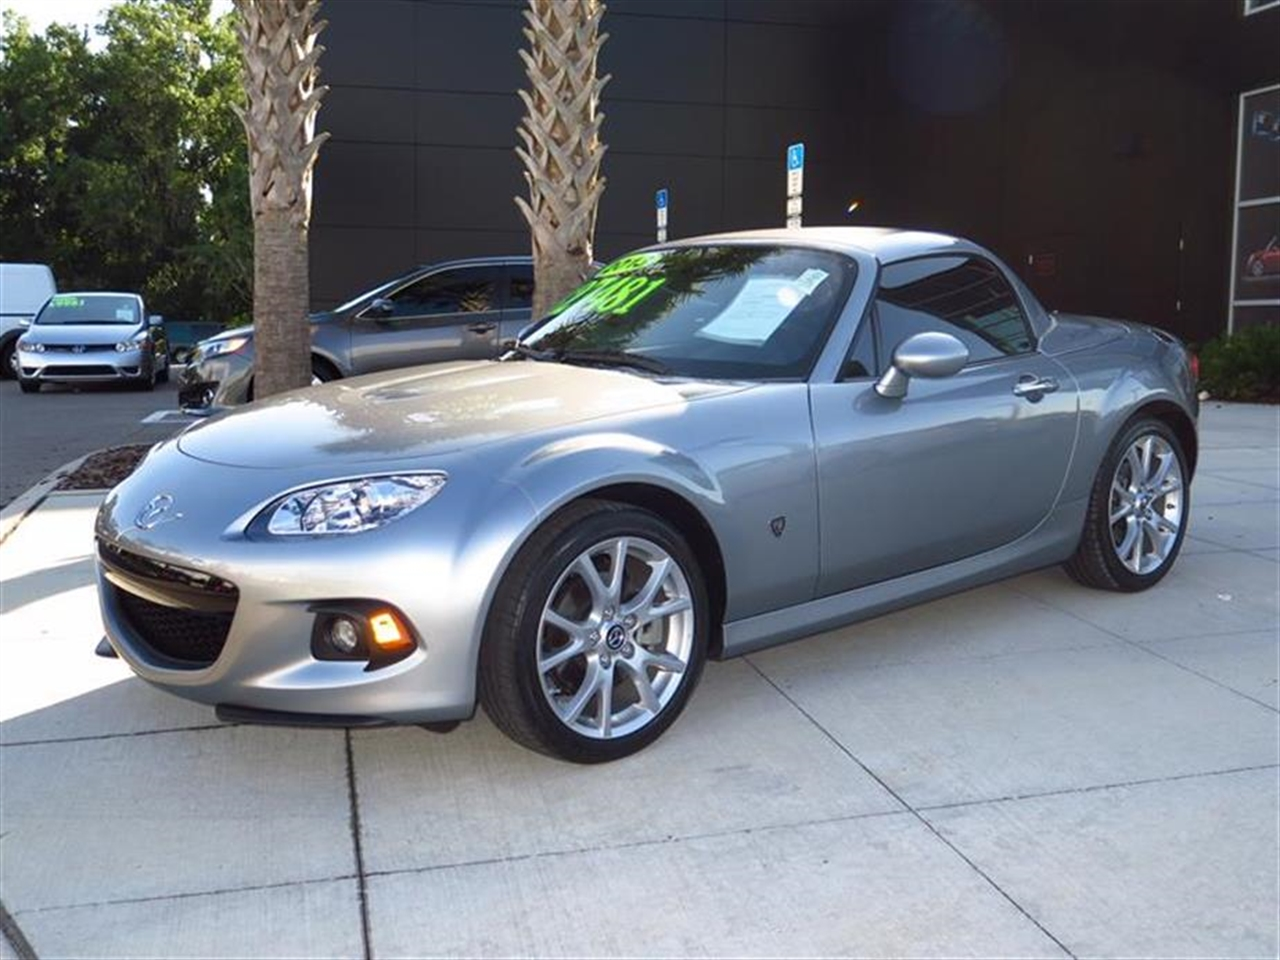 2013 MAZDA MX-5 MIATA 2dr Conv Hard Top Man Grand Touring 3392 miles 2 cup holders 12V pwr outl